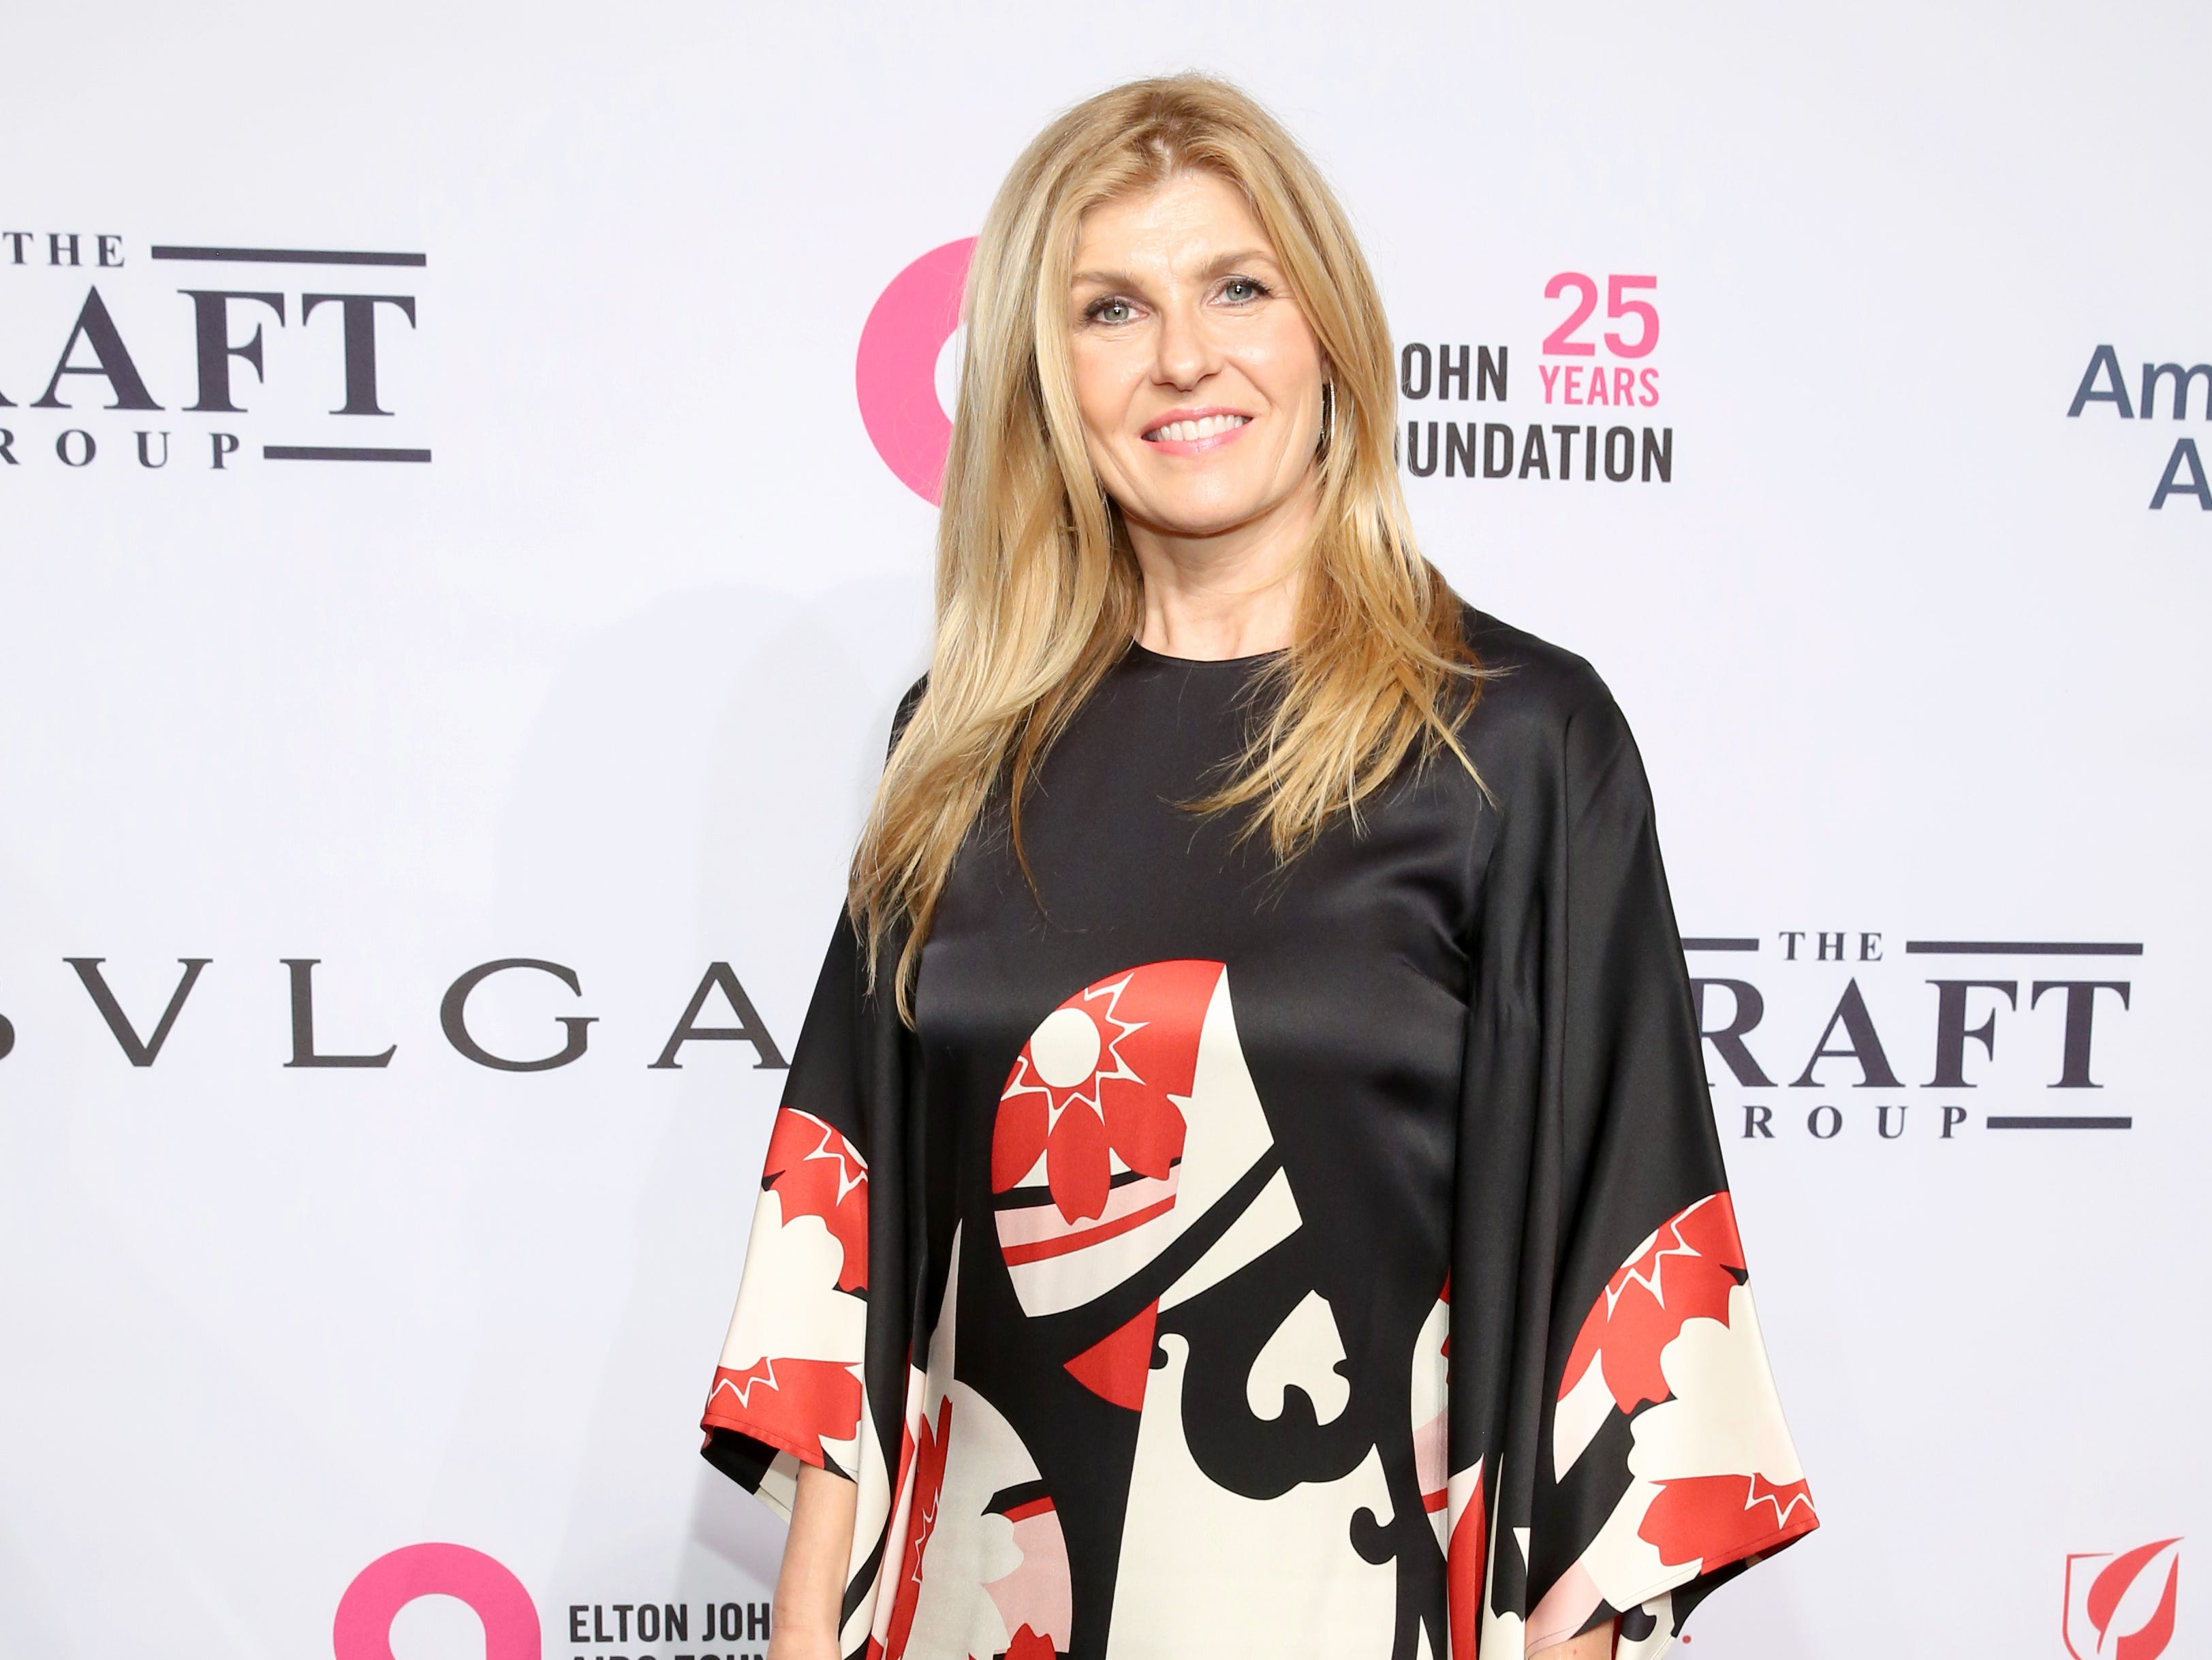 NEW YORK, NY - NOVEMBER 05:  Connie Britton attends the Elton John AIDS Foundation's 17th Annual An Enduring Vision Benefit at Cipriani 42nd Street on November 5, 2018 in New York City.  (Photo by Monica Schipper/WireImage) ORG XMIT: 775252041 ORIG FILE ID: 1057825346